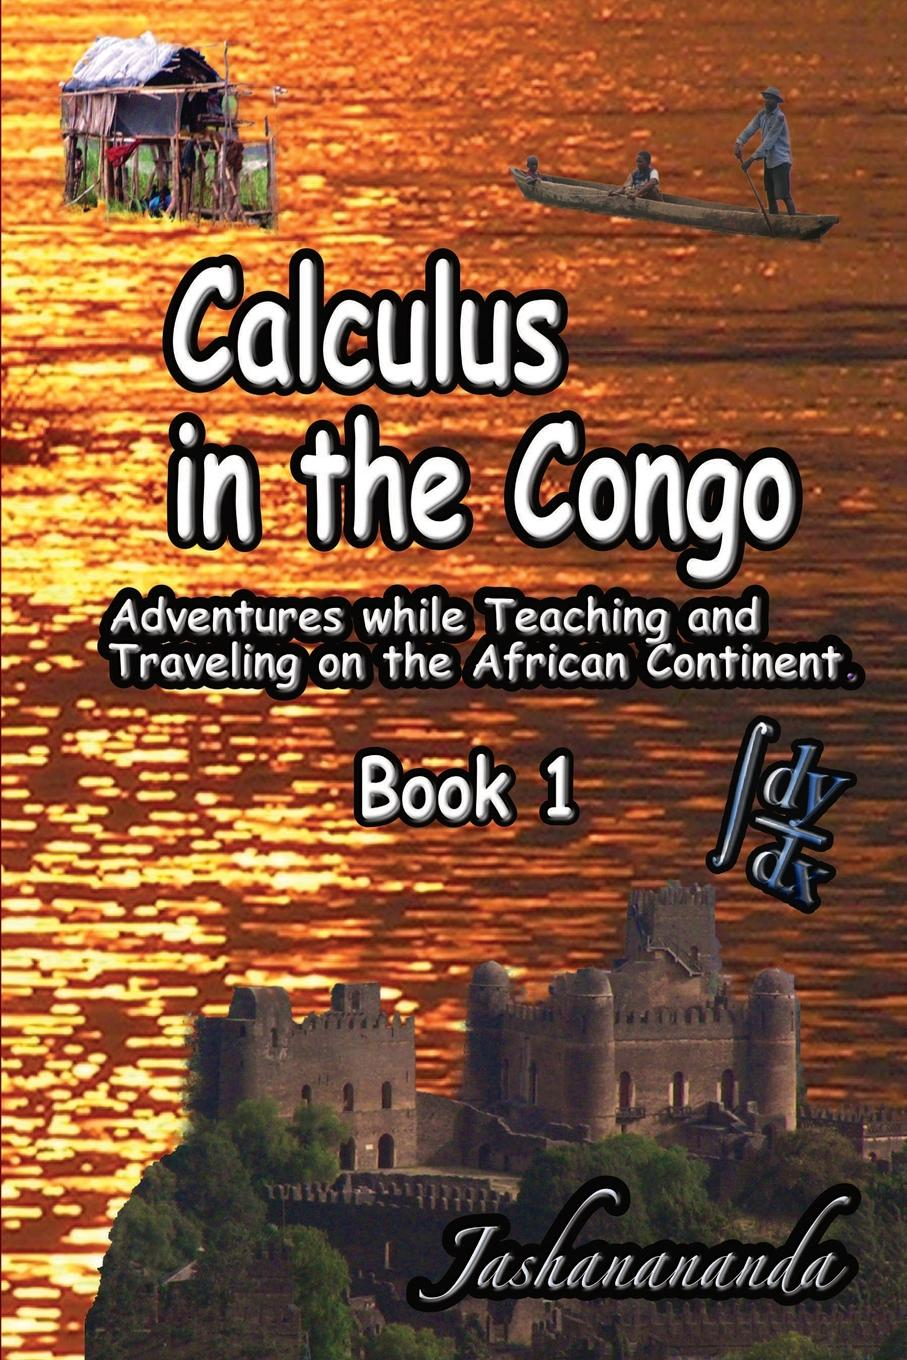 Jashanananda Calculus in the Congo Book 1